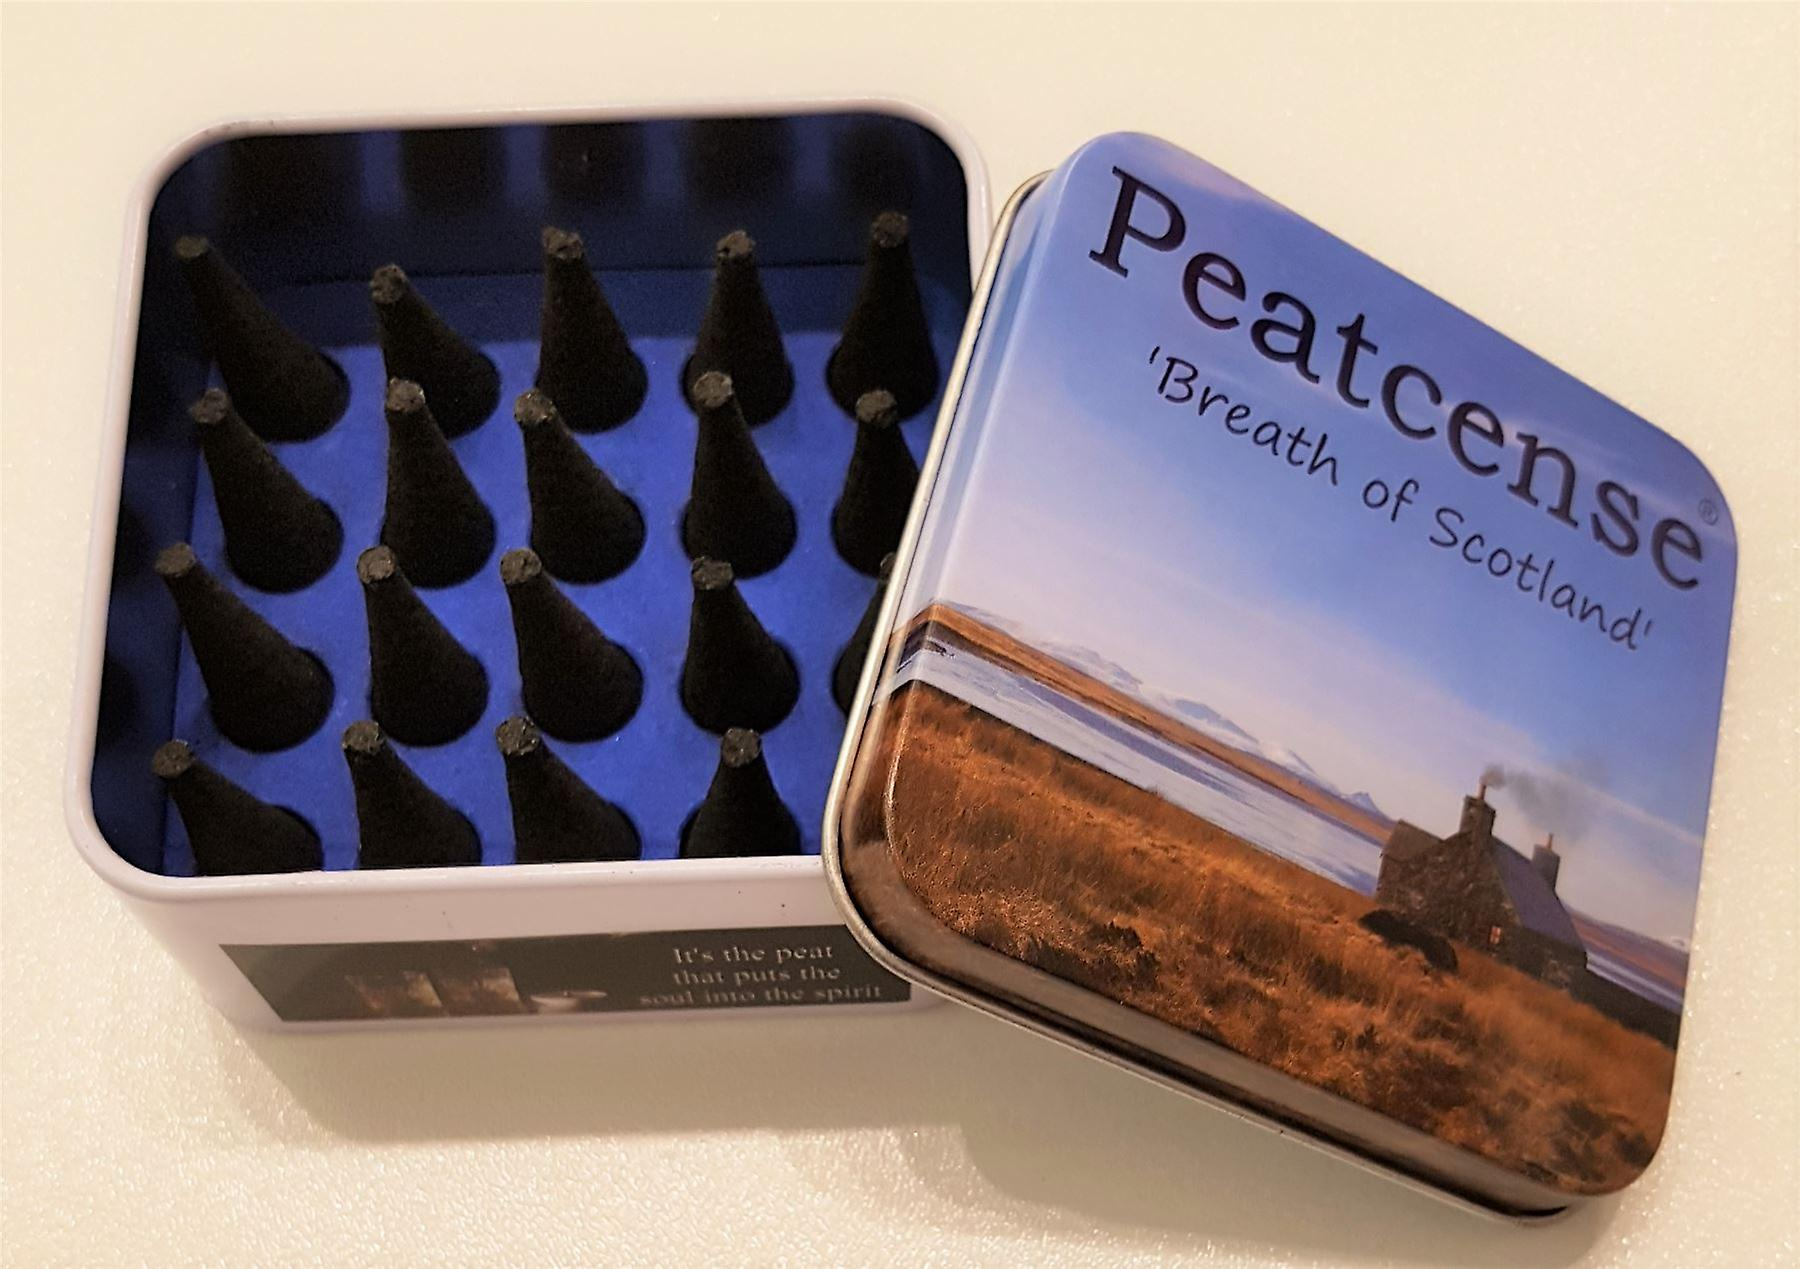 Peatcense Incense Cones and Slate Holder